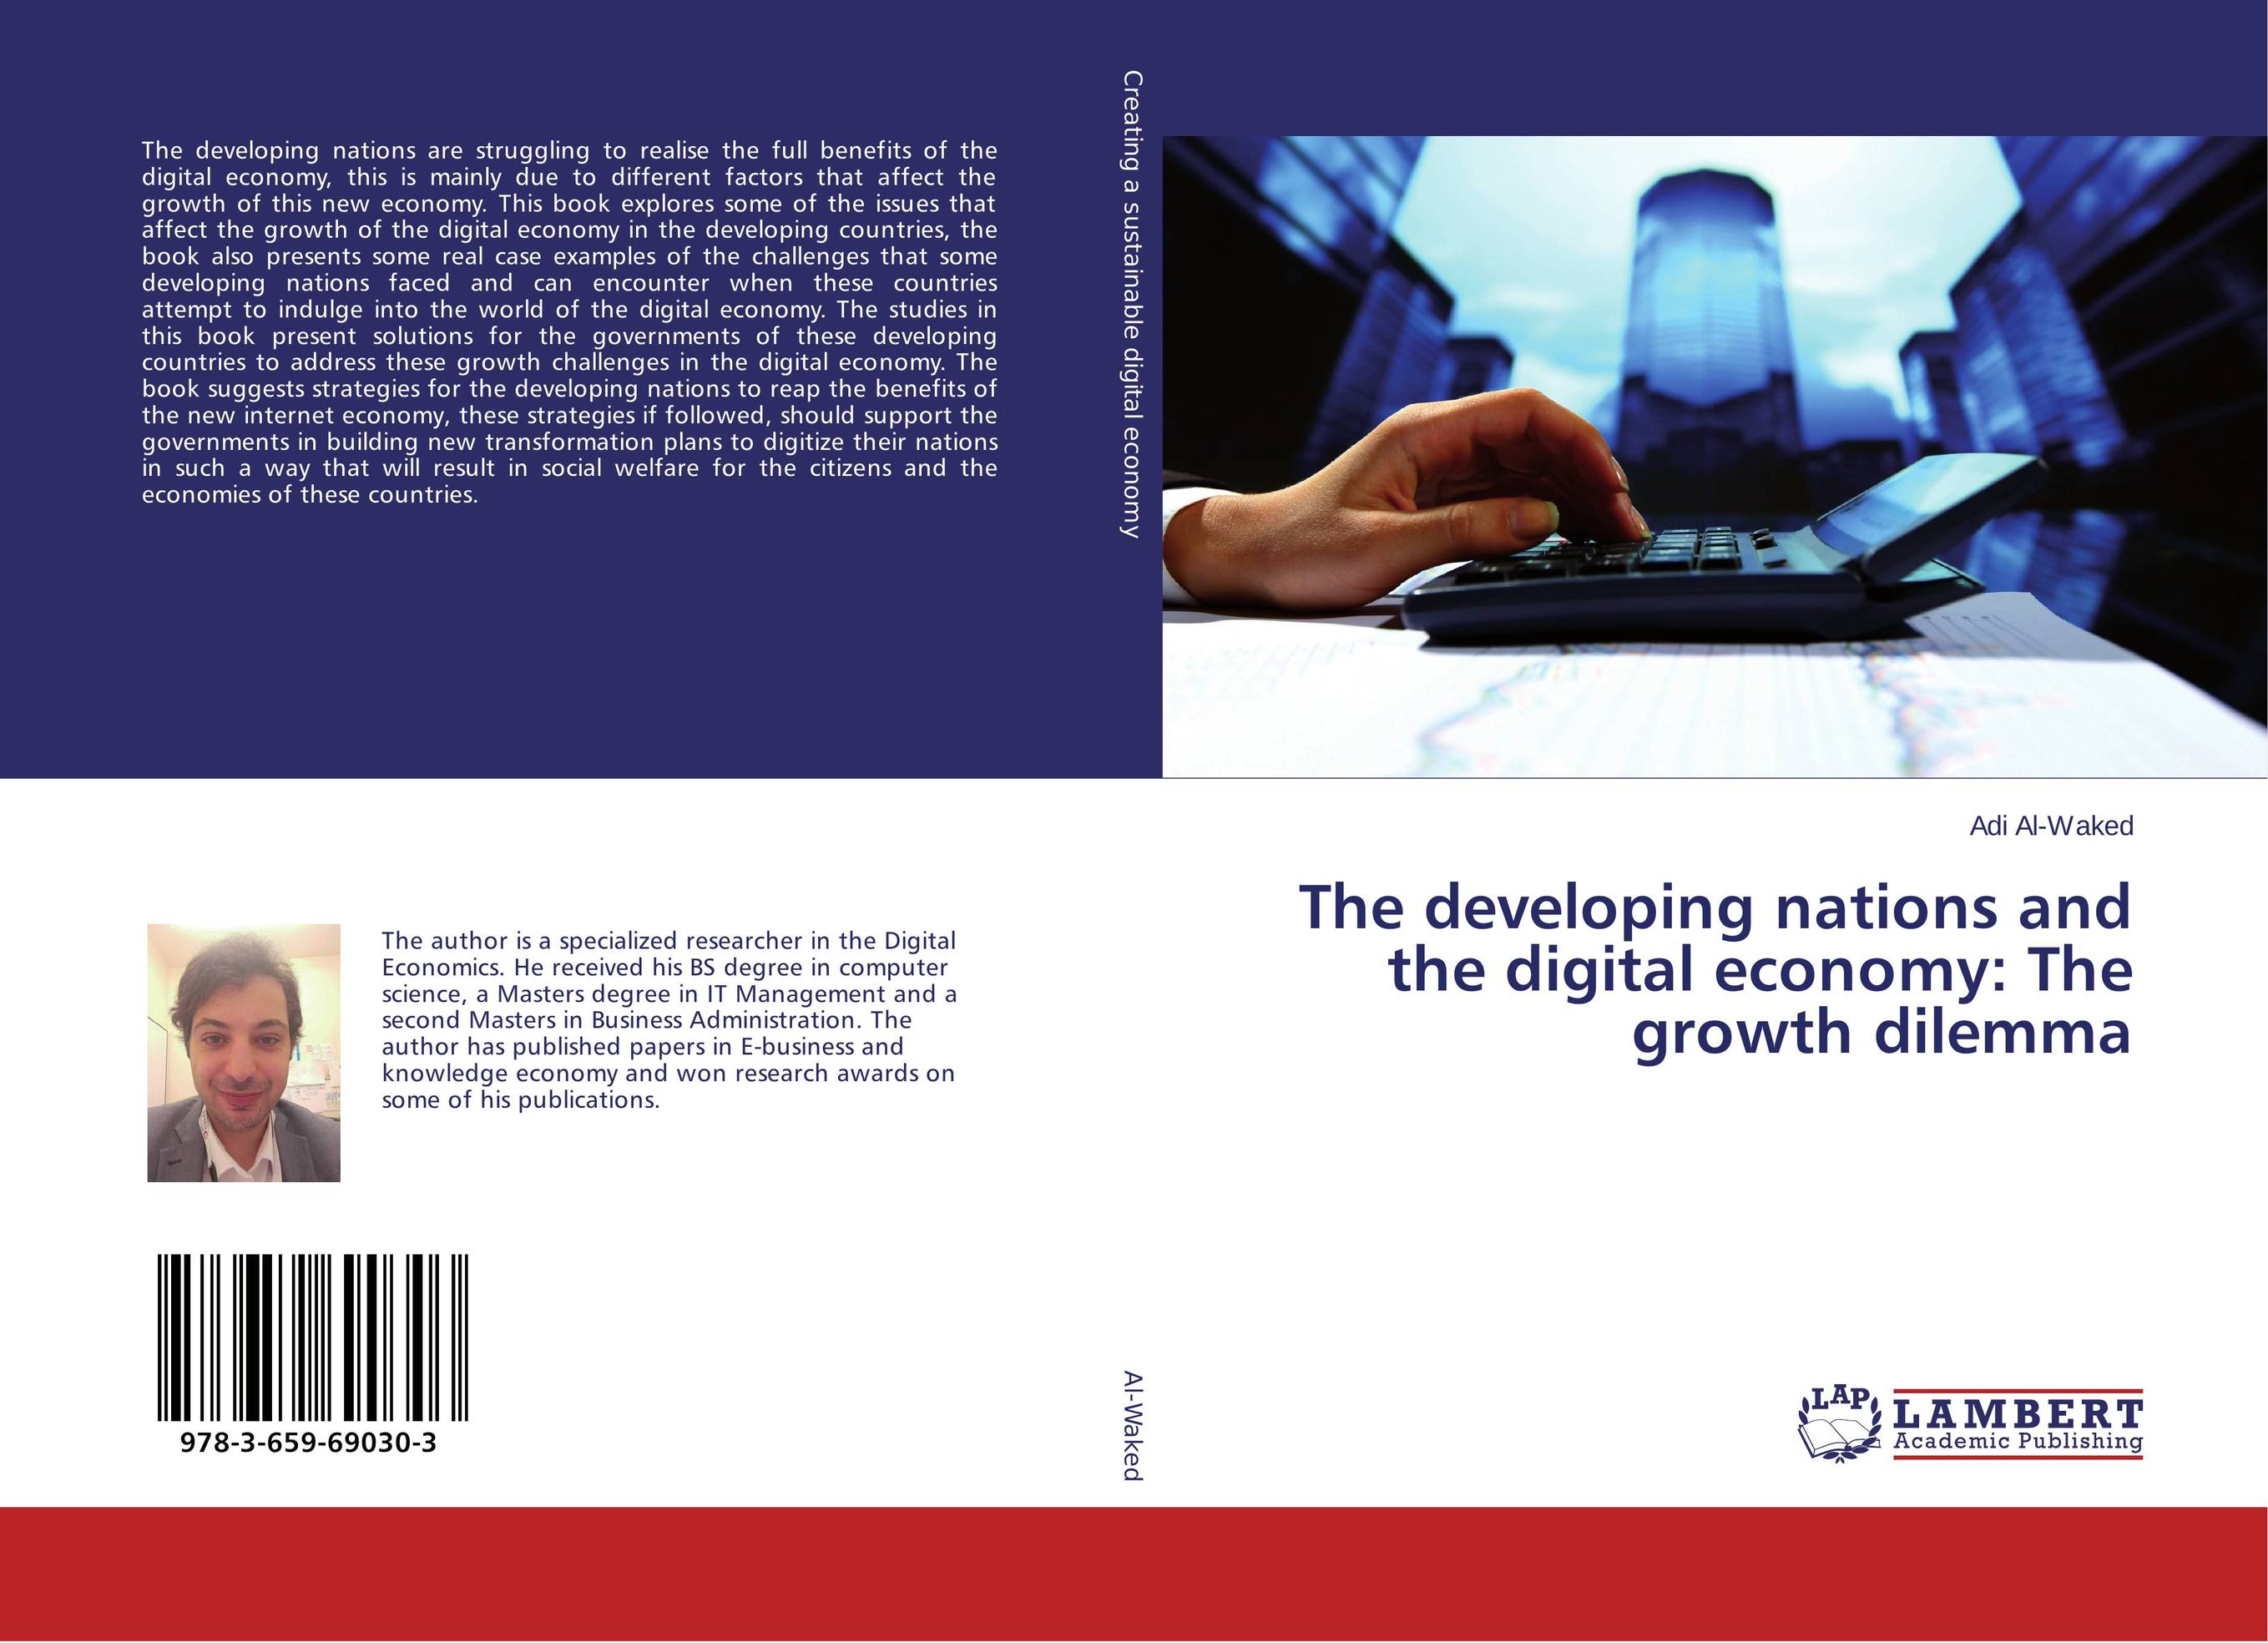 The developing nations and the digital economy: The growth dilemma walking the road of new economy